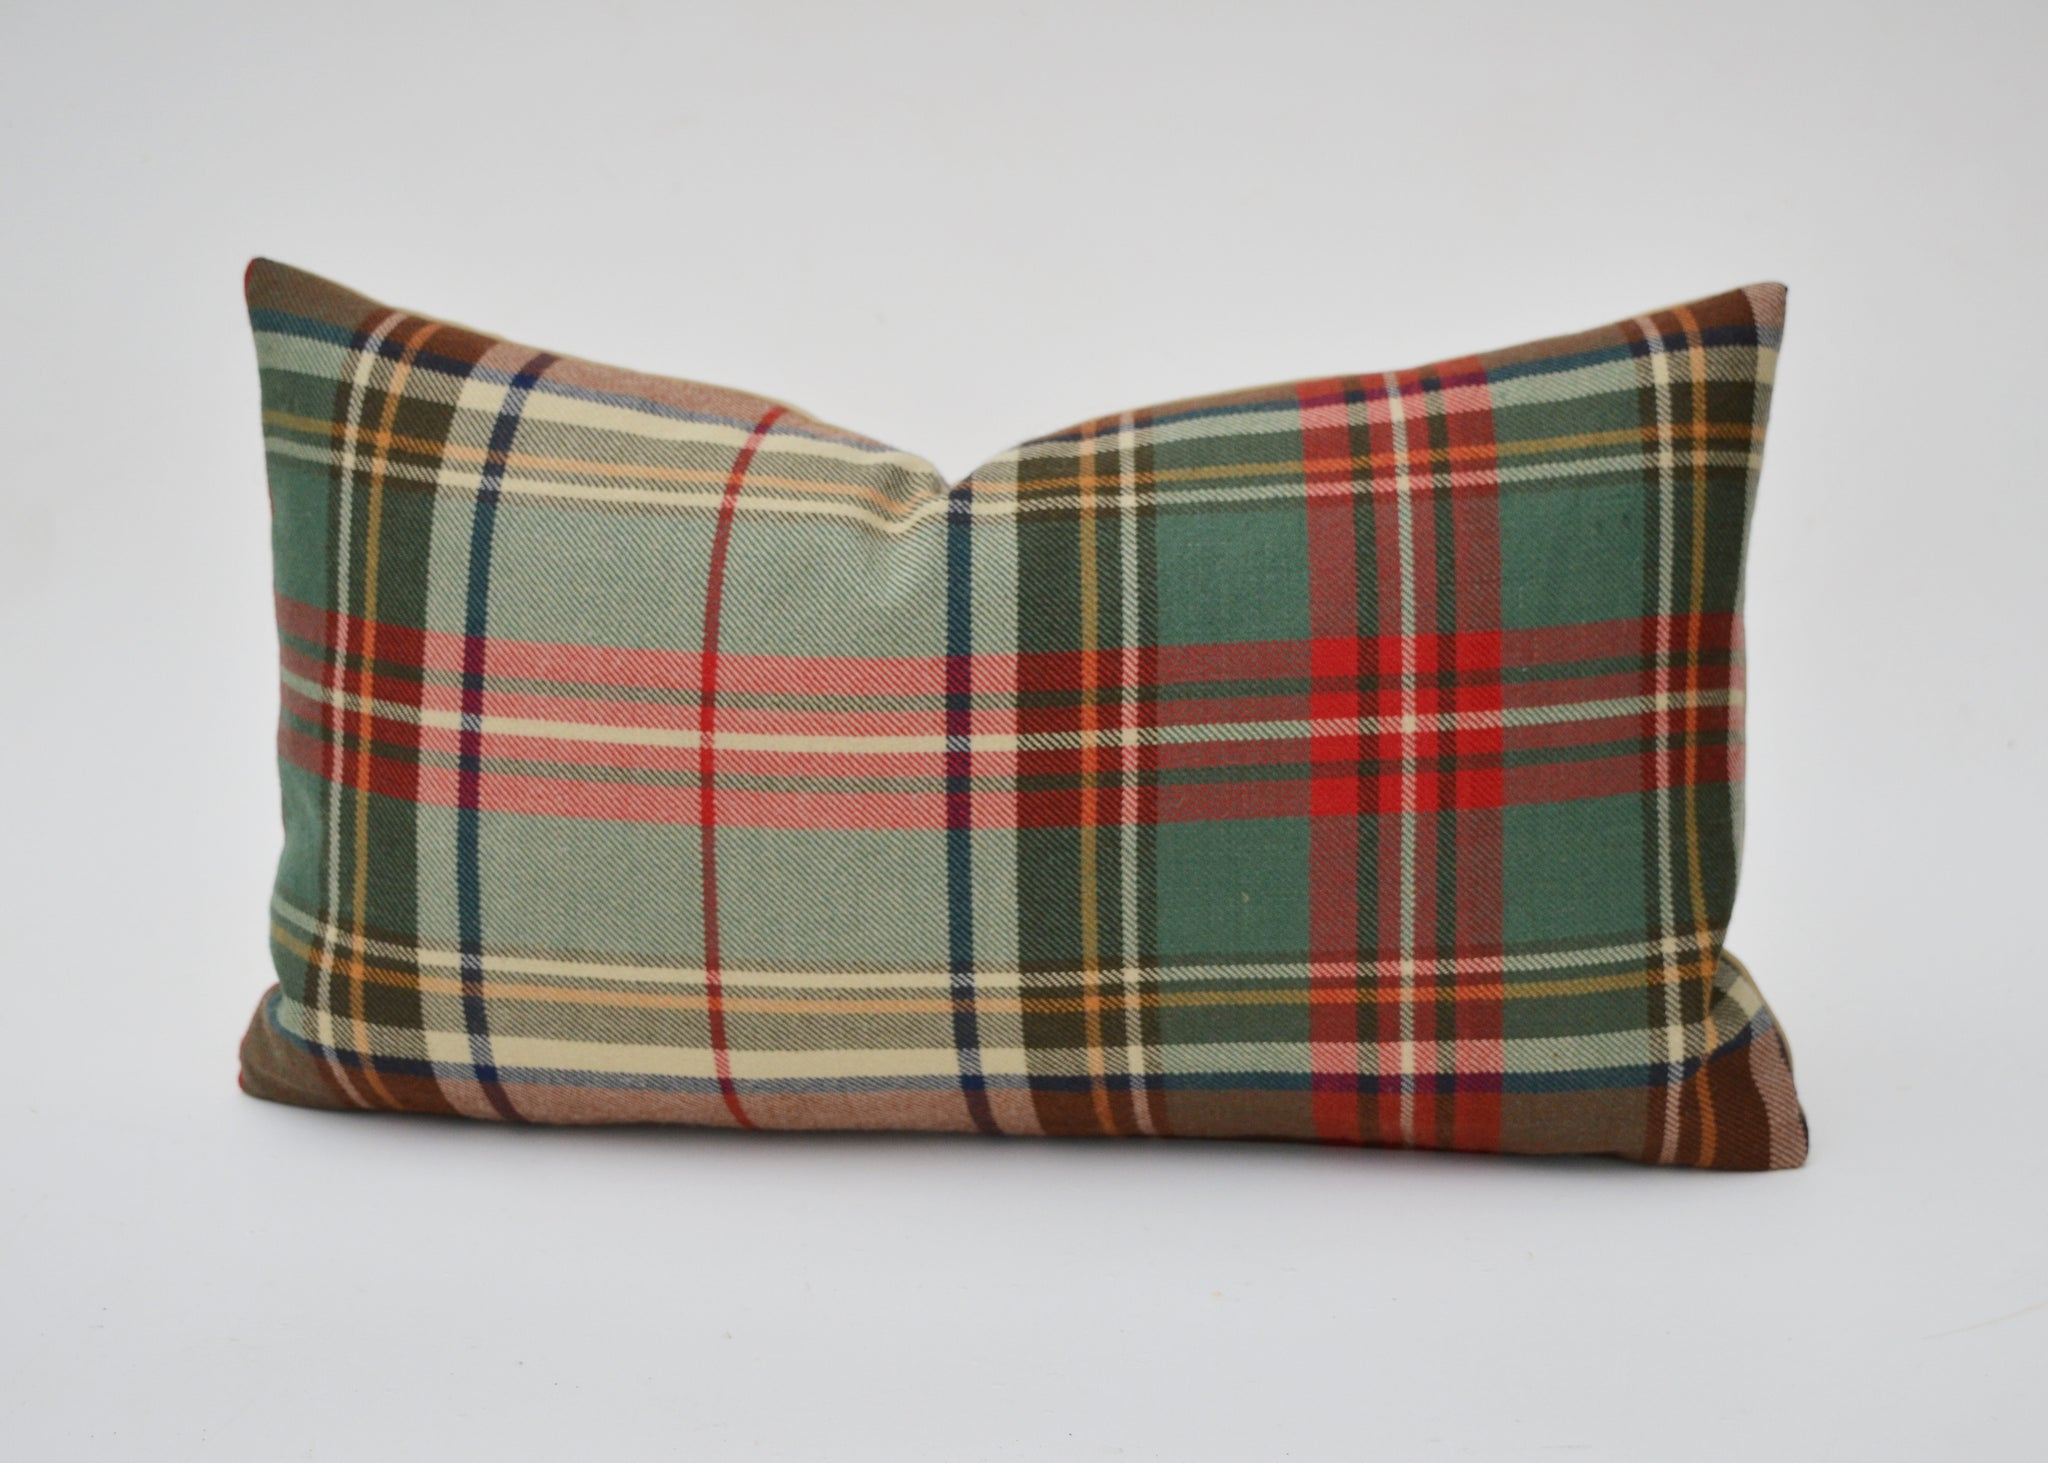 Ralph Lauren's Brimfield Plaid is the quintessential plaid and makes the perfect pillow cover in a gorgeous array of colors. Classic reds, greens, tans, blues and others combine on an exceptionally luxurious feeling 100% wool fabric.